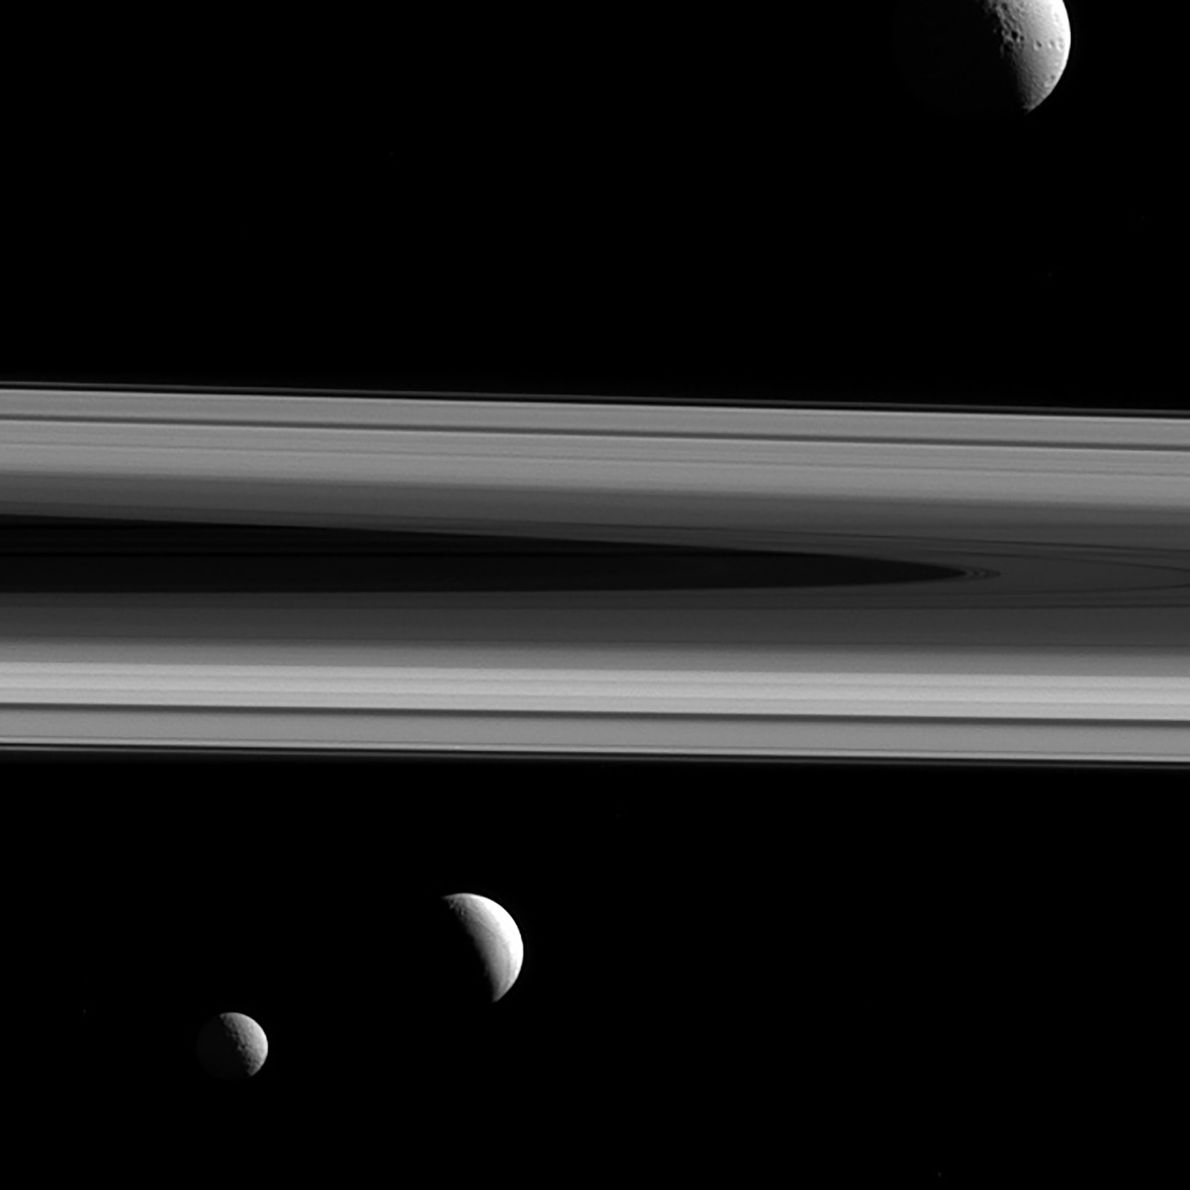 Three of Saturn's moons—Tethys, Enceladus, and Mimas—appear in a group photo taken by Cassini.